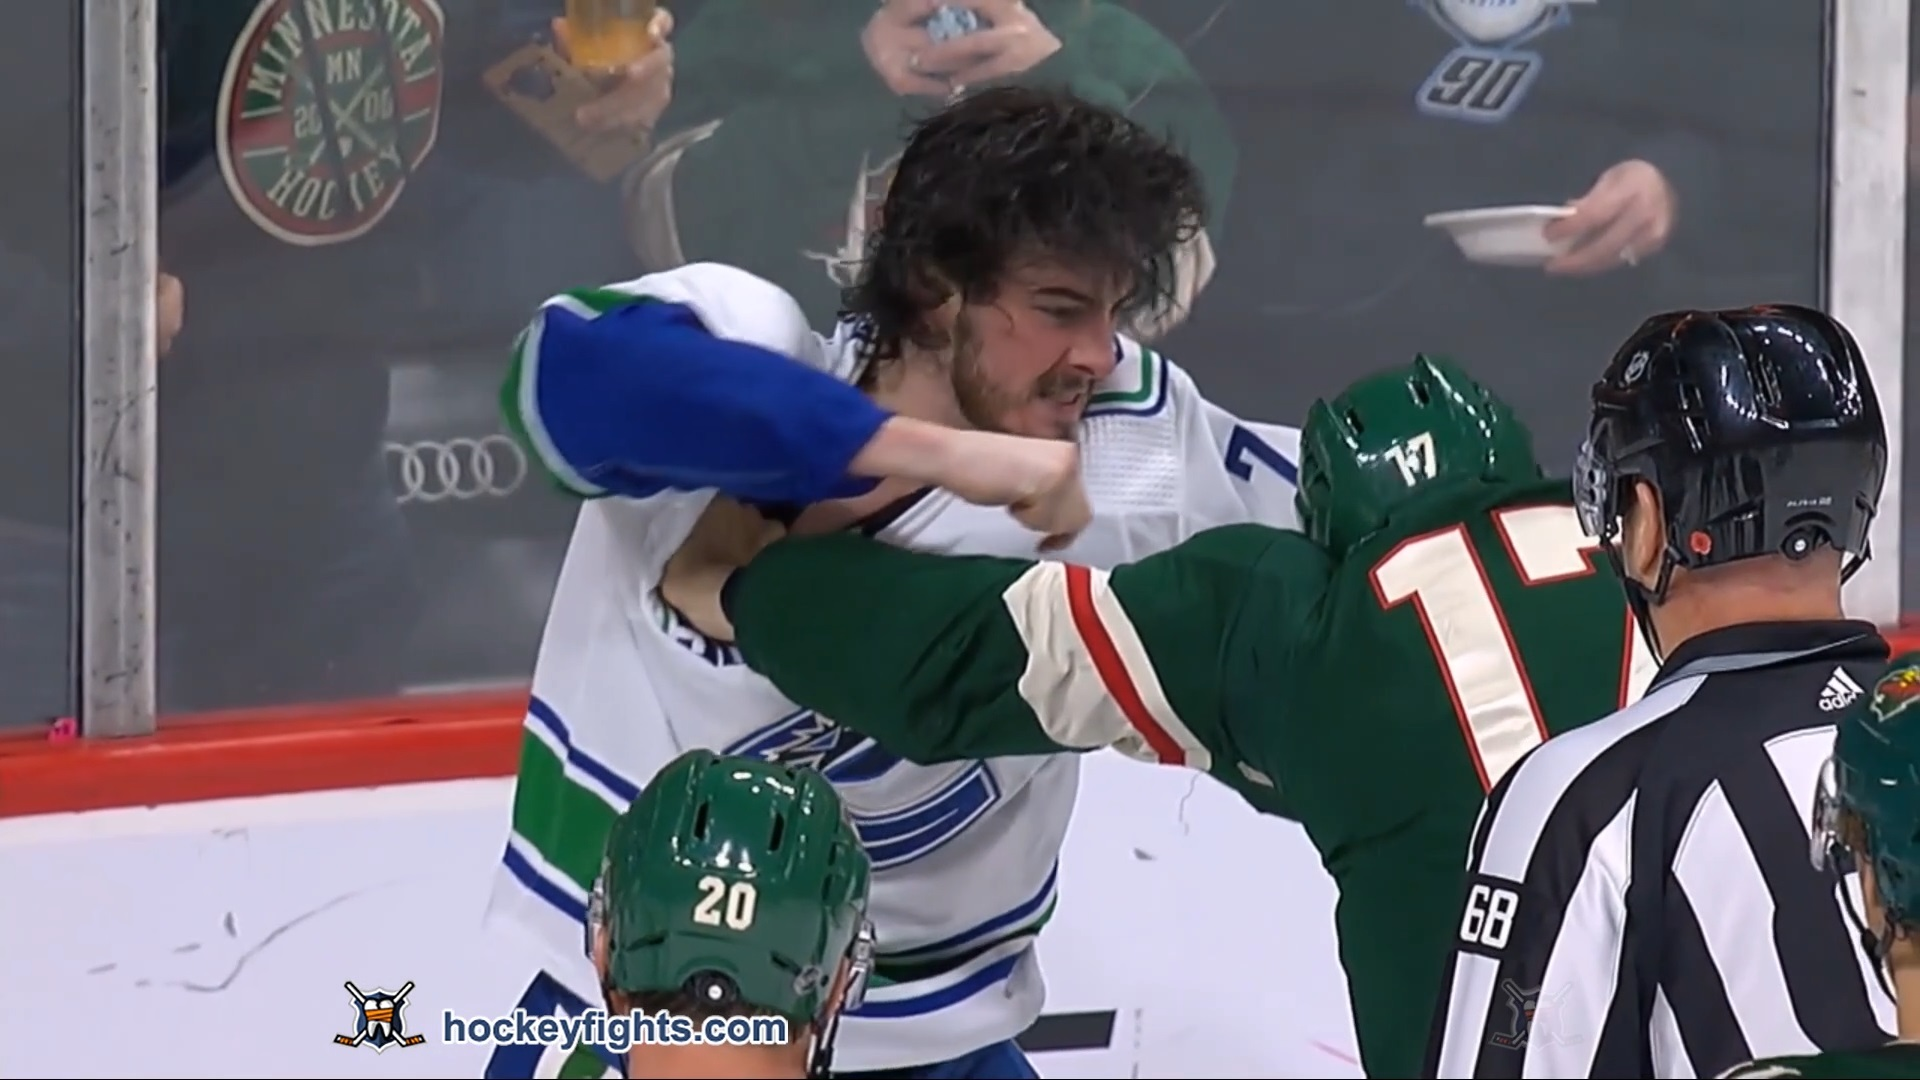 Marcus Foligno vs. Zack MacEwen